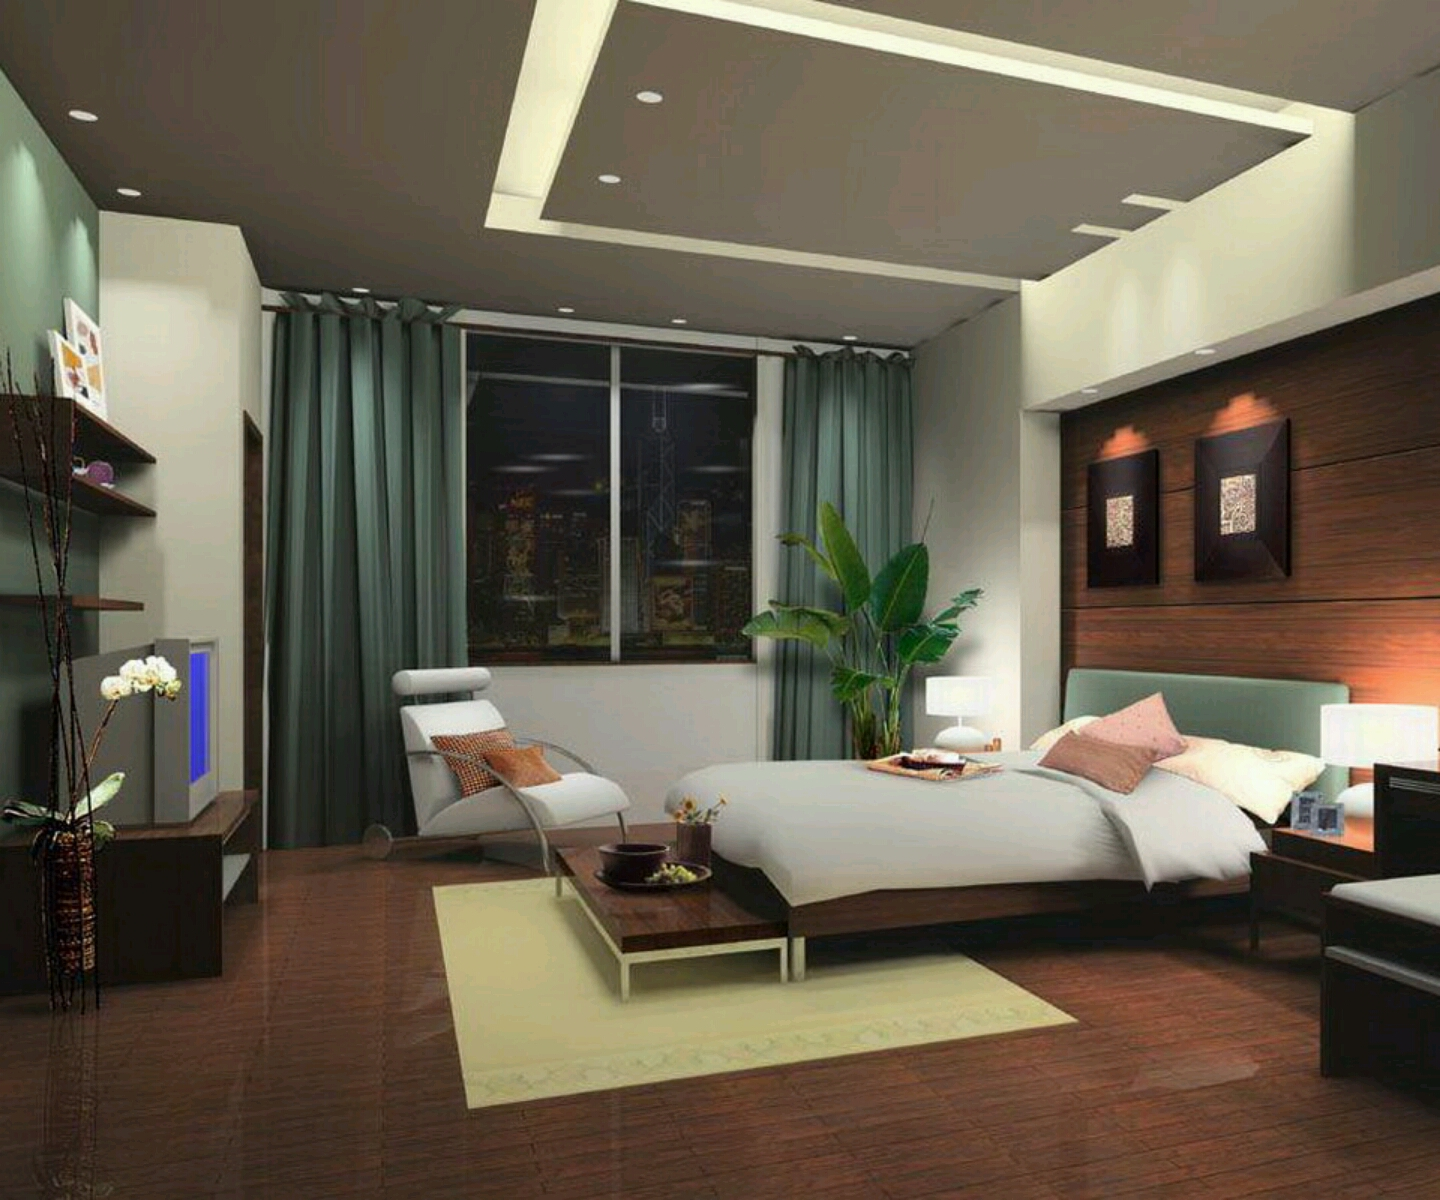 New home designs latest modern bedrooms designs best ideas for Best house design of the year